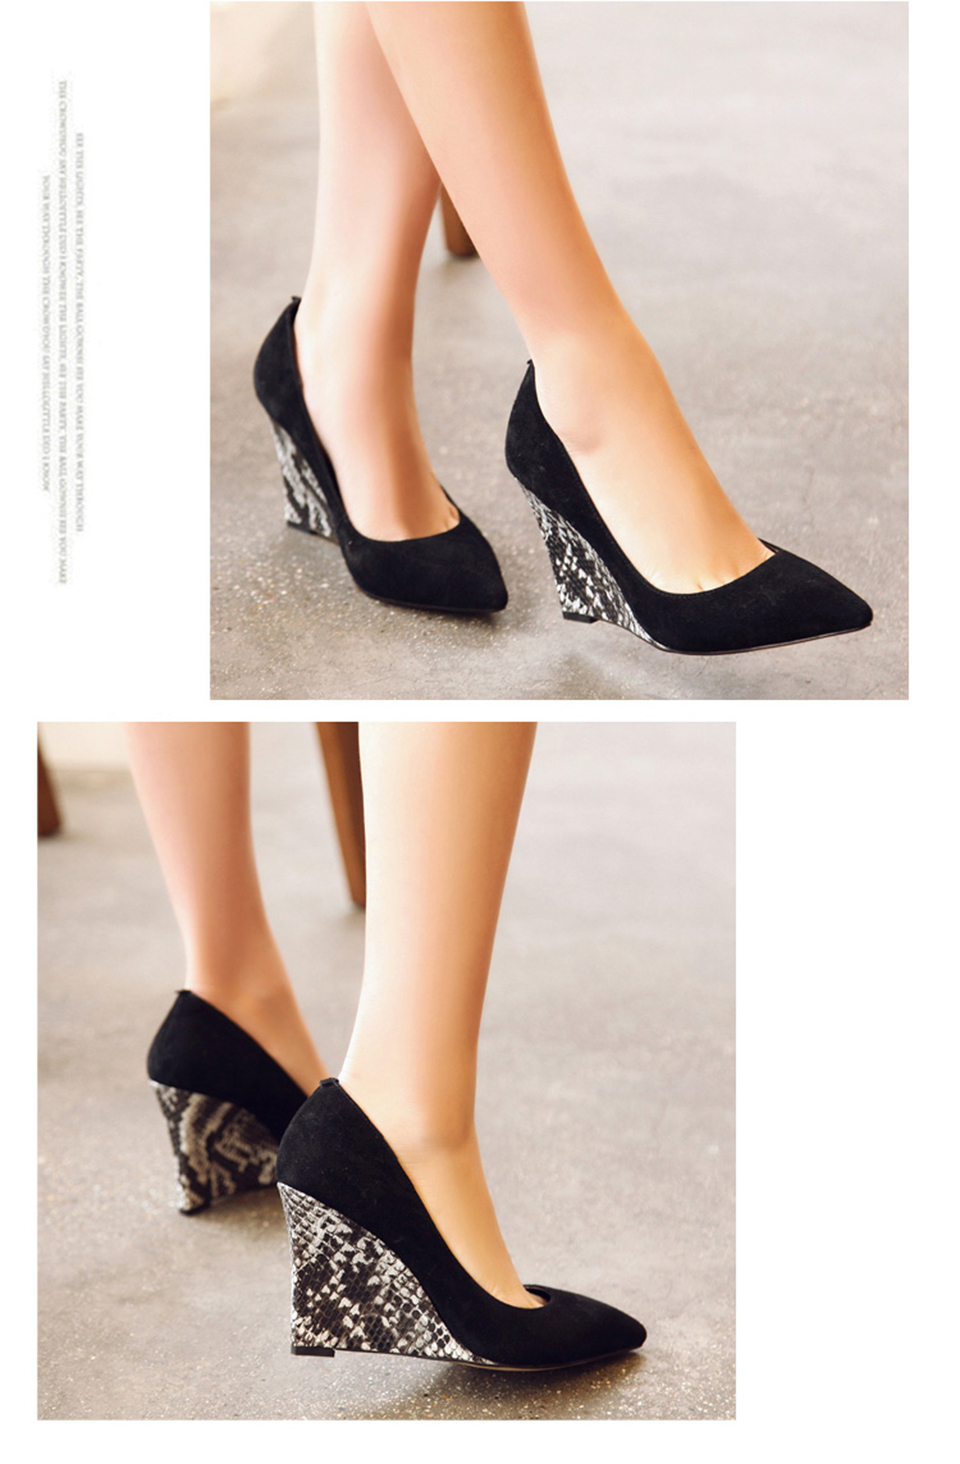 db97044362fc Sheepskin Shoes Women Pointed Toe Novelty Small Size Snake 4 34 Snakeskin  Genuine Leather Suede Wedge High Heels Pumps 2017